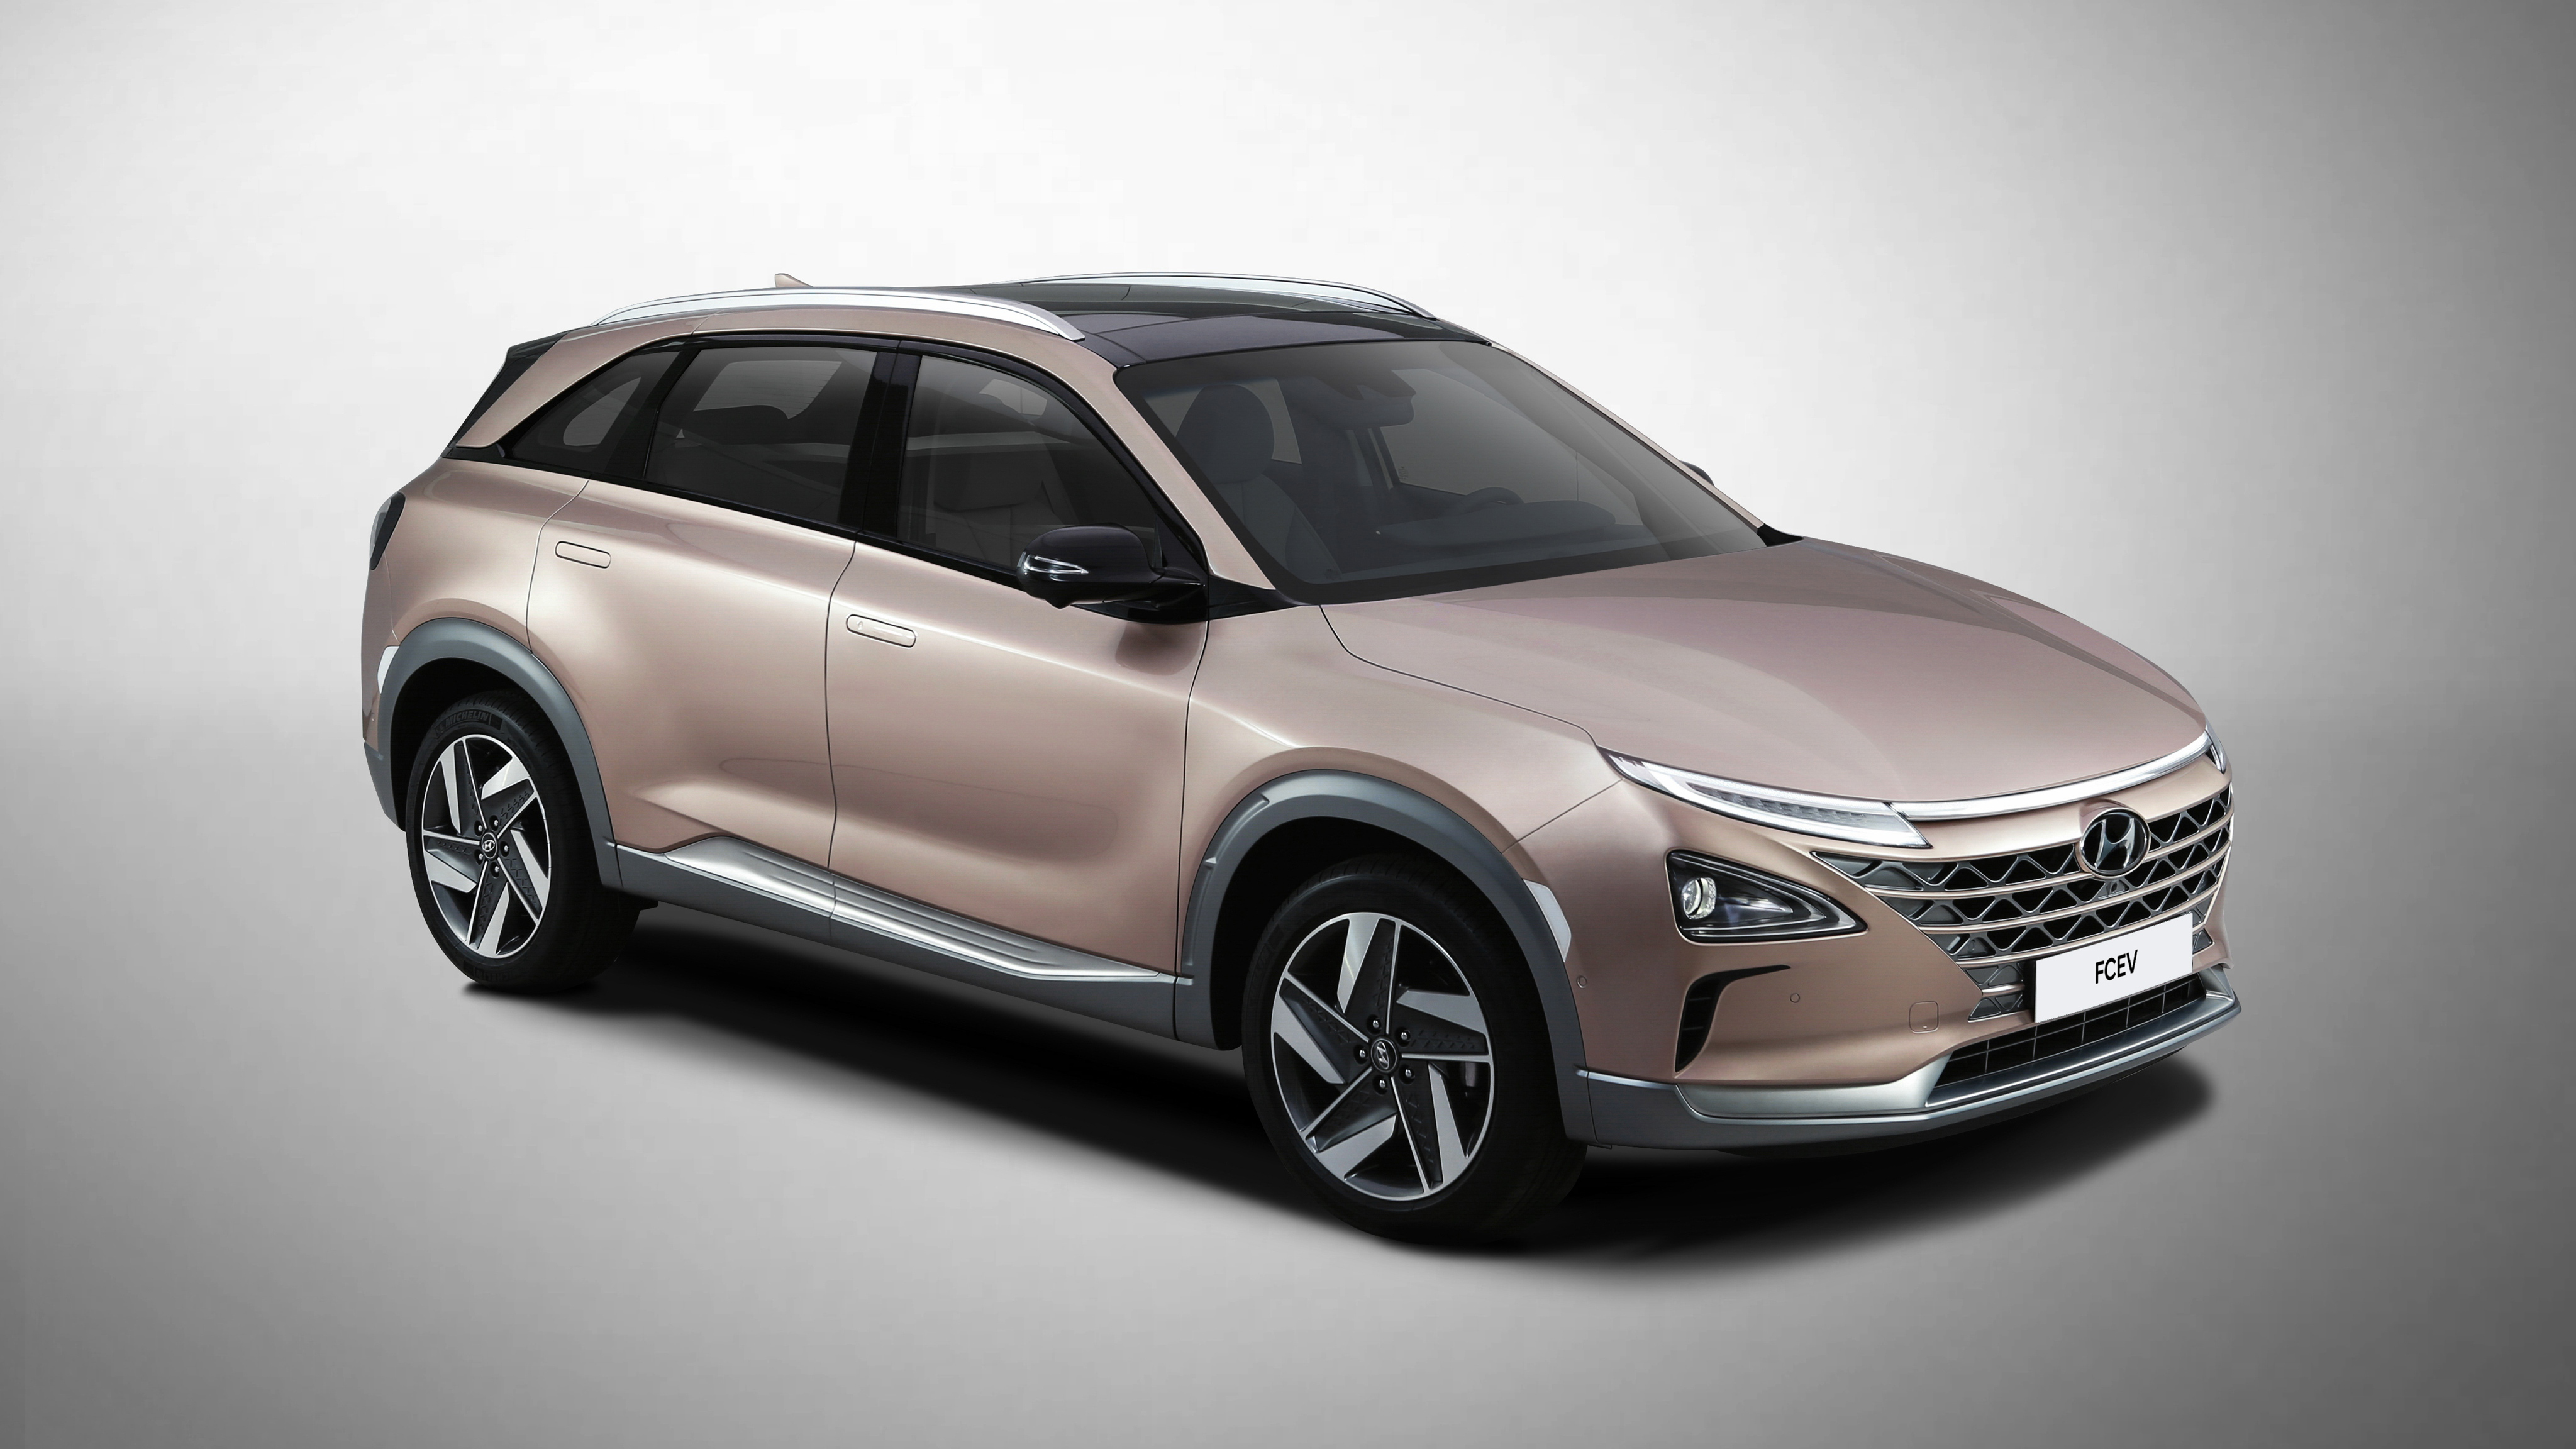 Hyundai Nexo Ces 2018 4k Wallpaper Hd Car Wallpapers Id 9388